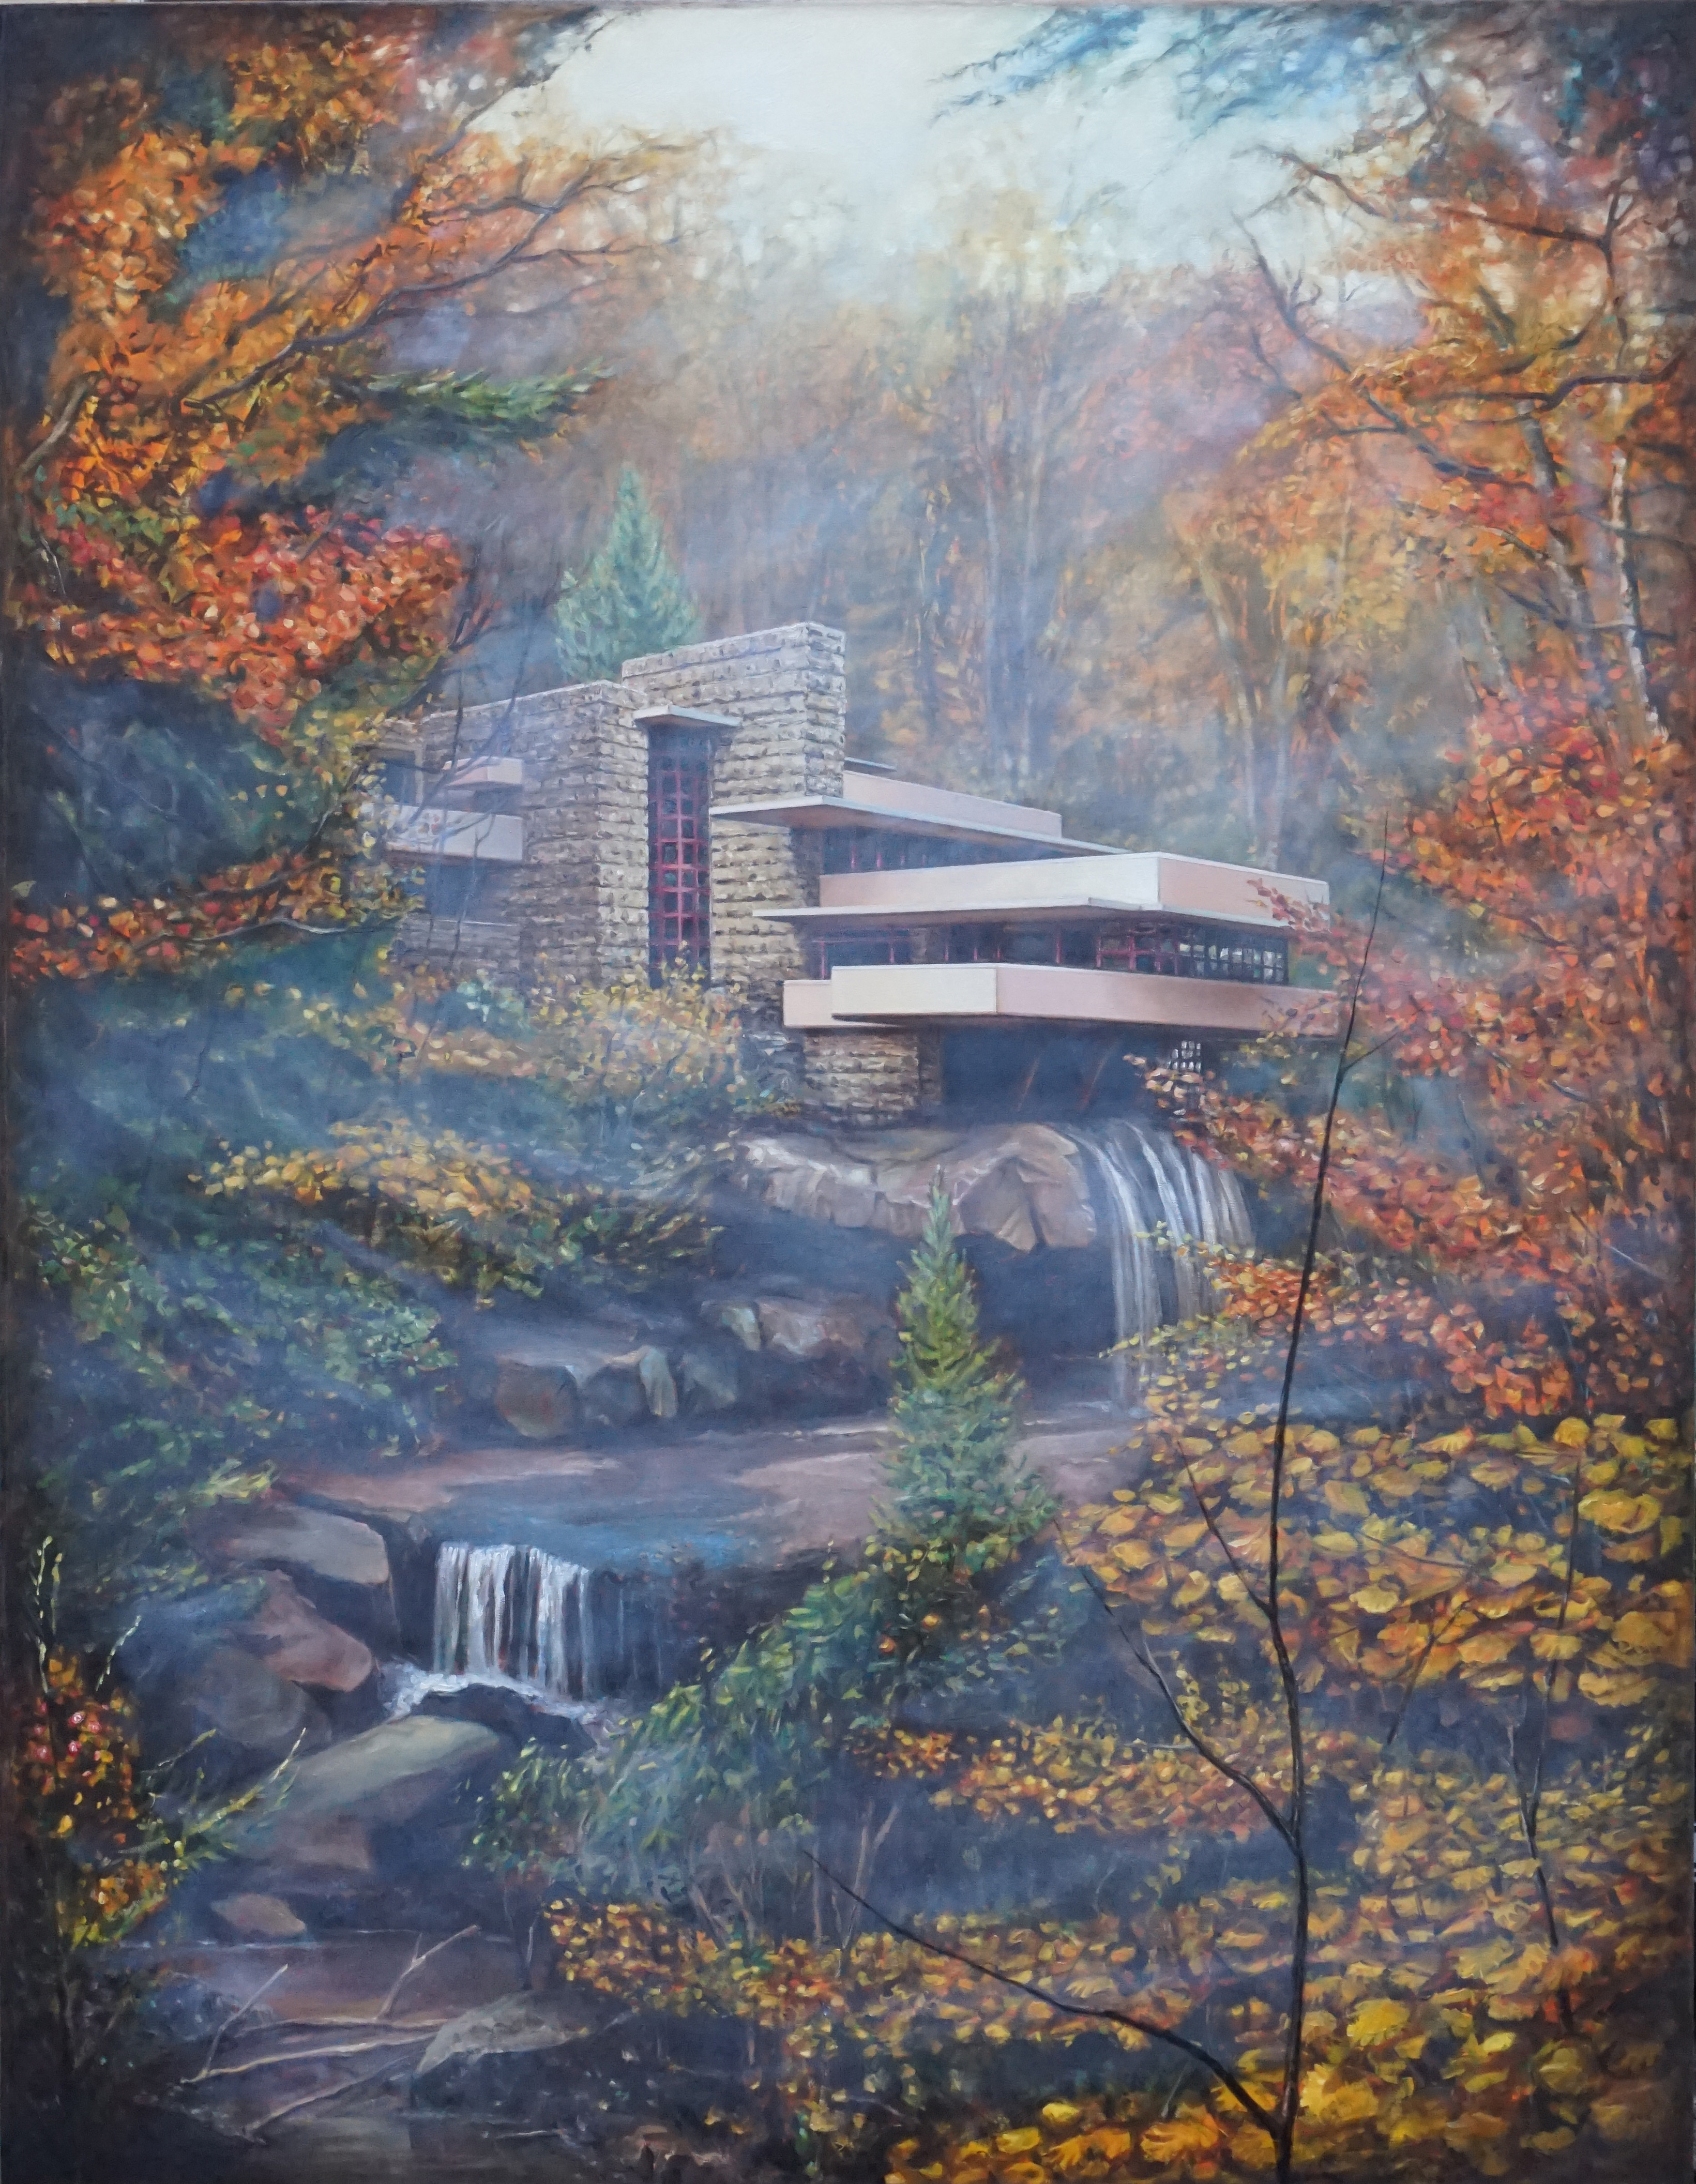 House Falling Water, 2020